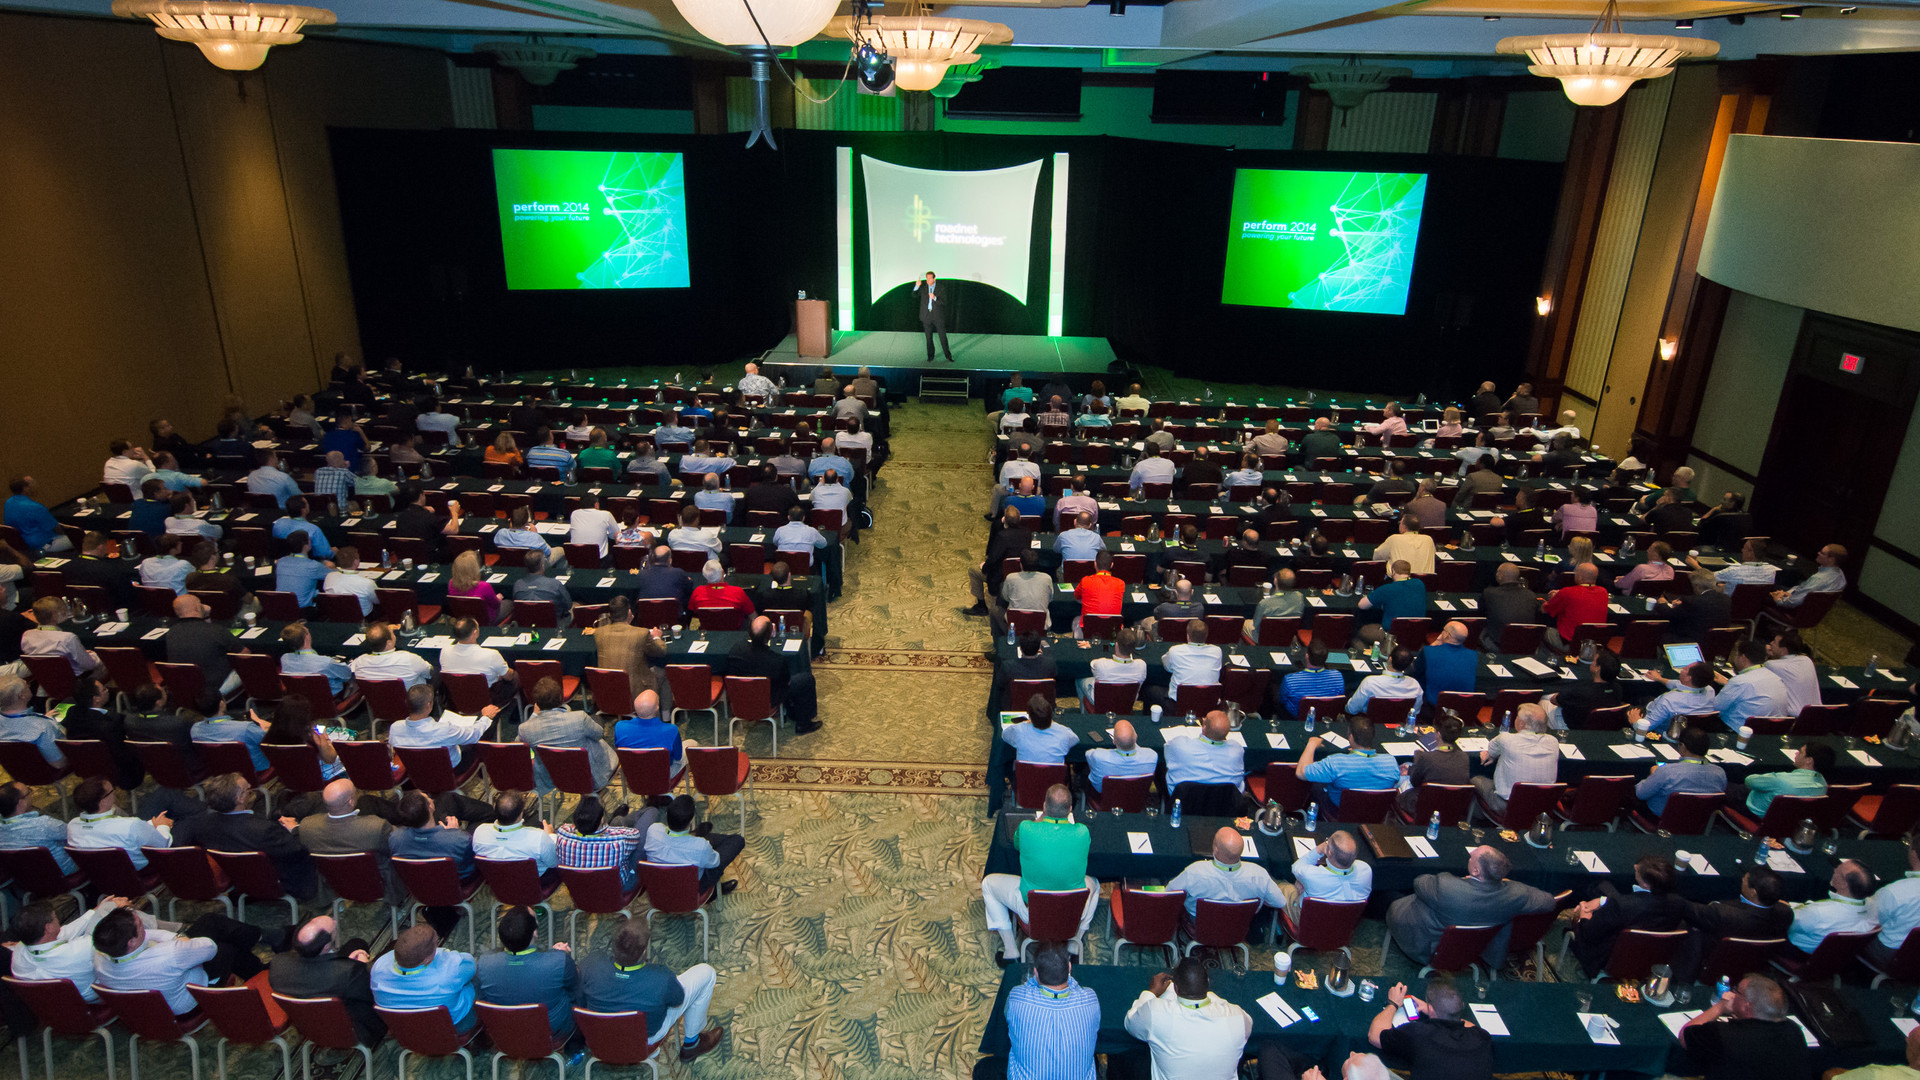 General session production and set up at